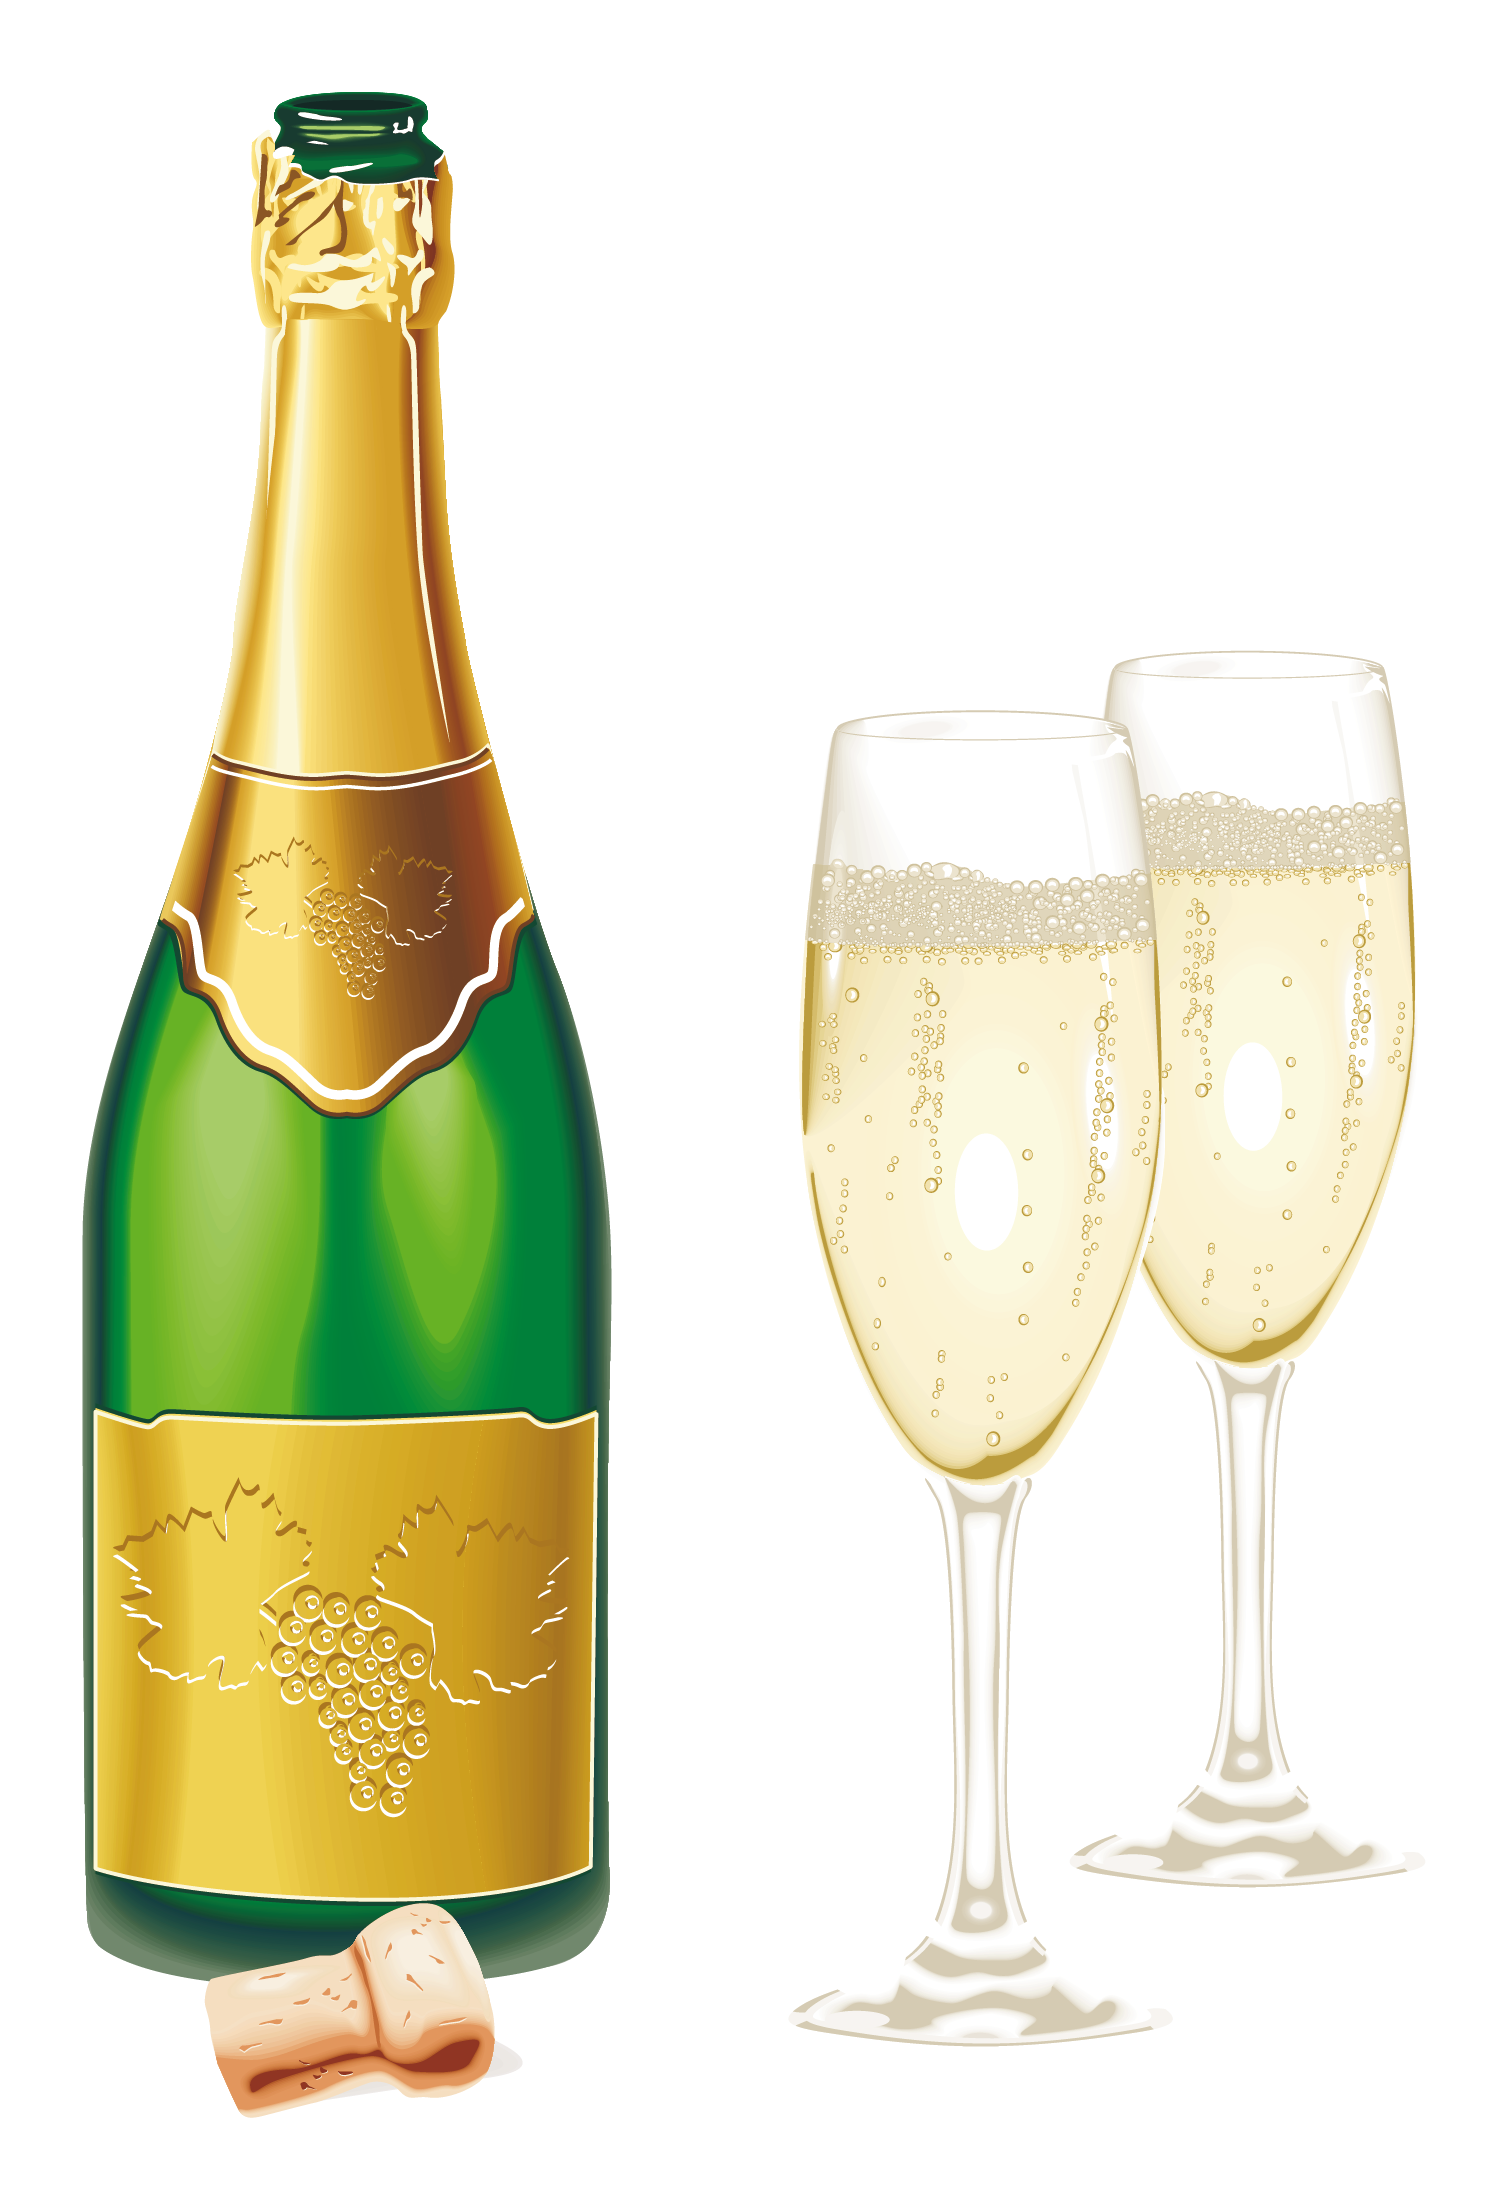 Champagne clipart file. Png web icons transparent